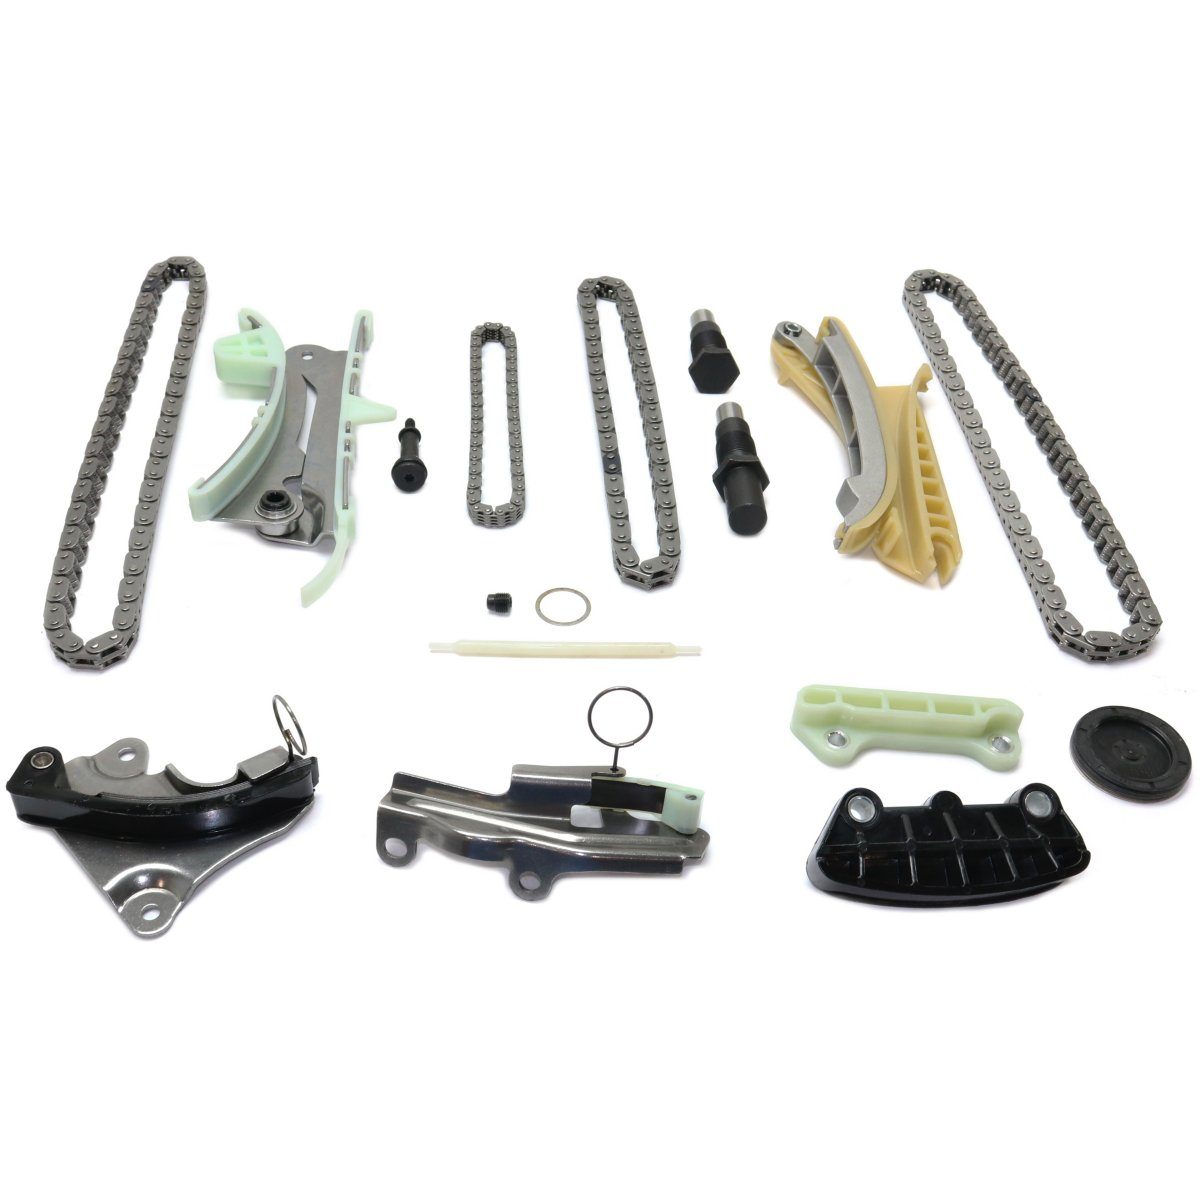 New Timing Chain Kit Without Gears Ford Mercury 4 0 Liter Sohc